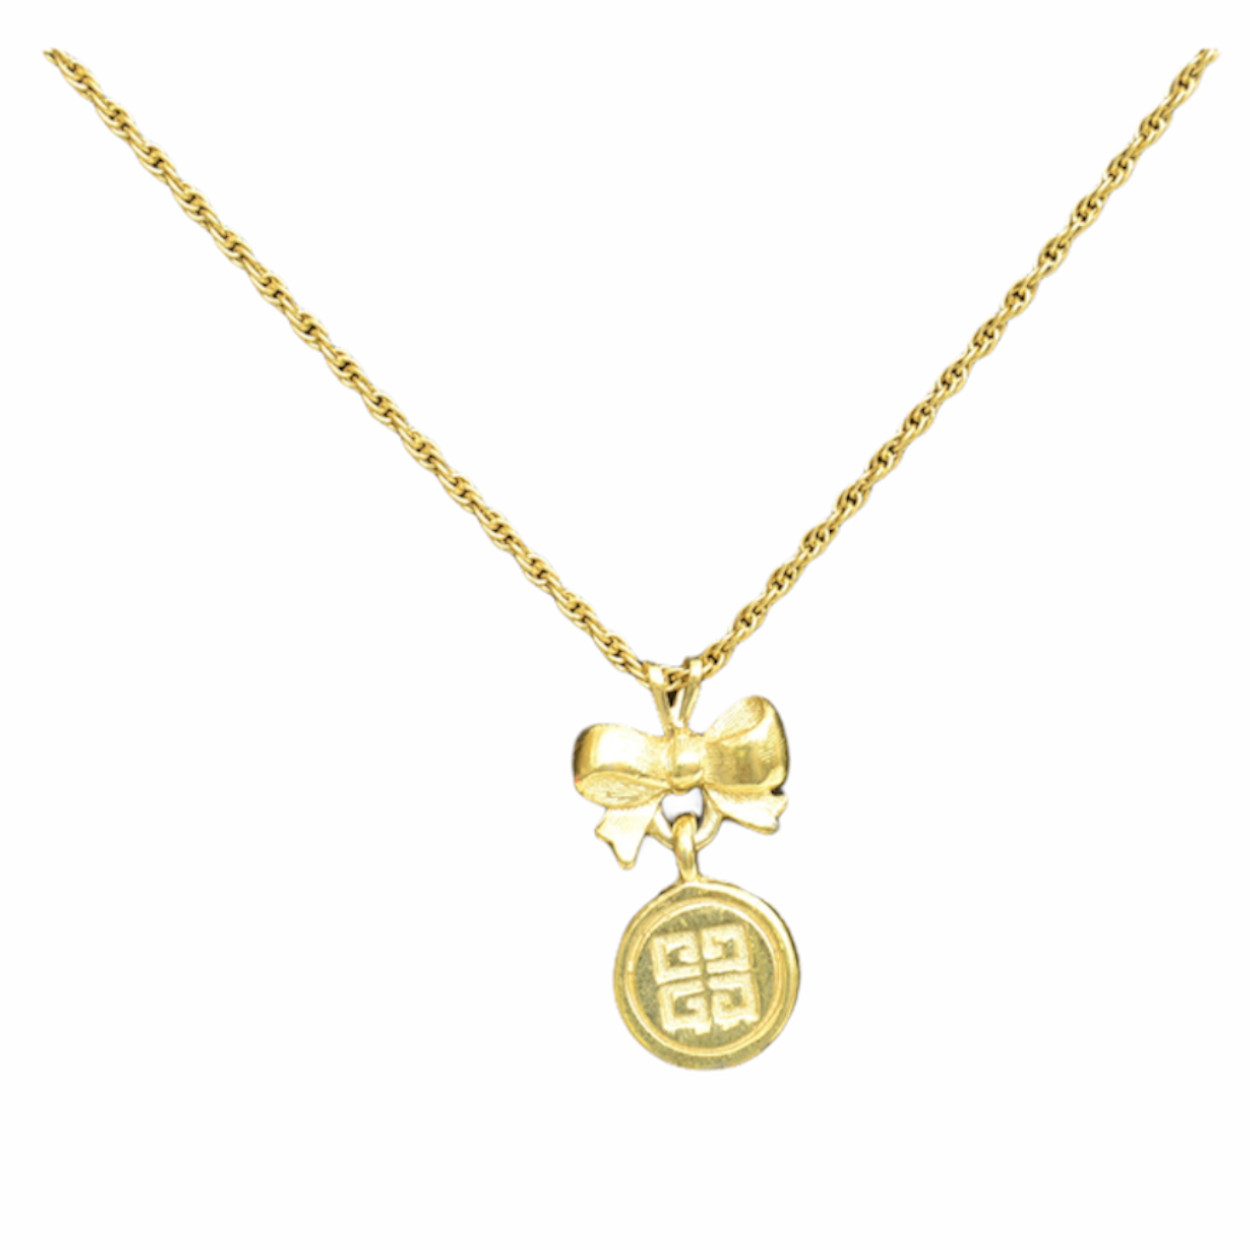 Sweet Gold Brass Heart Pendant with Rhinestone Detail and Square Chain 1980s Statement Love Gift Necklace